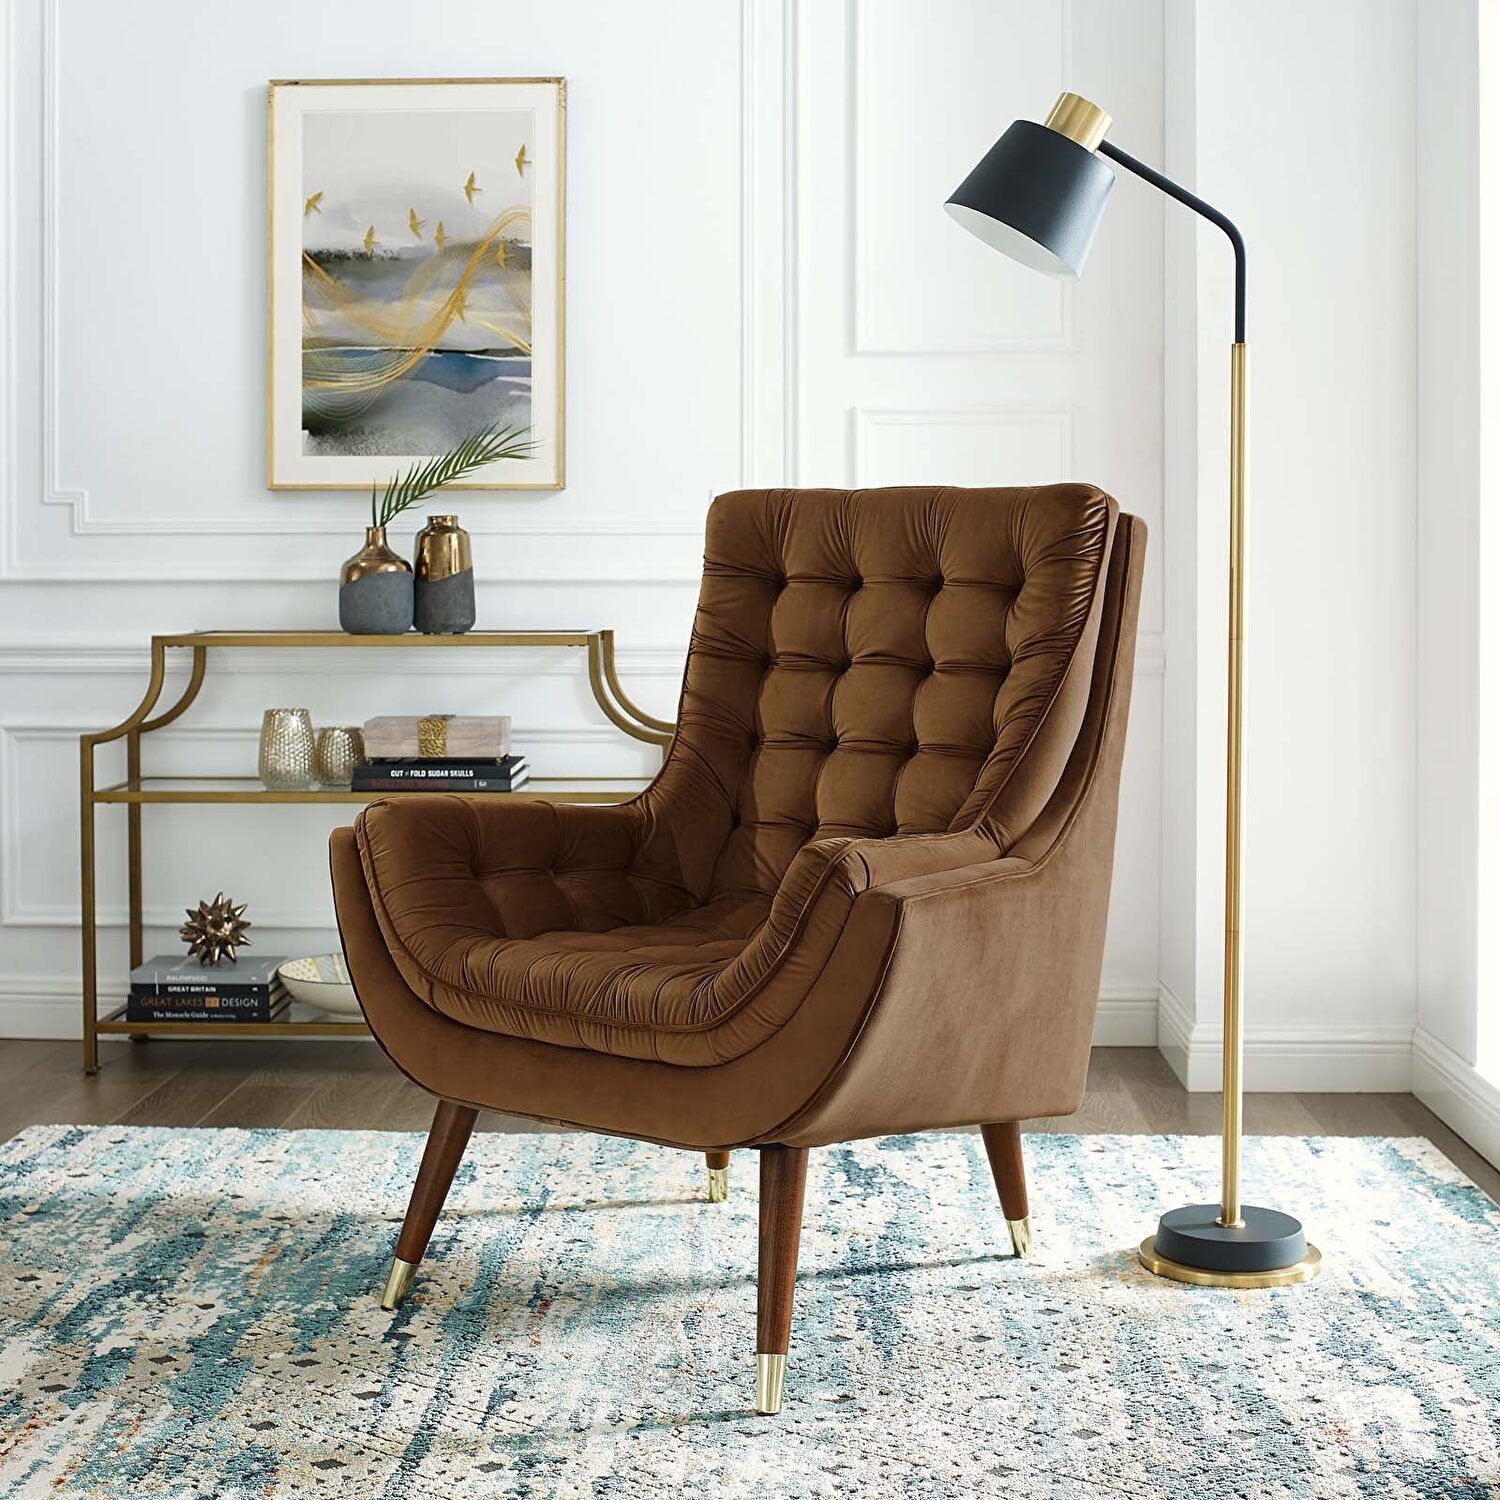 Suggest Brown Chair Eei 3001 Brn Modway Furniture Chairs In 2021 Velvet Lounge Chair Velvet Lounge Living Room Lounge